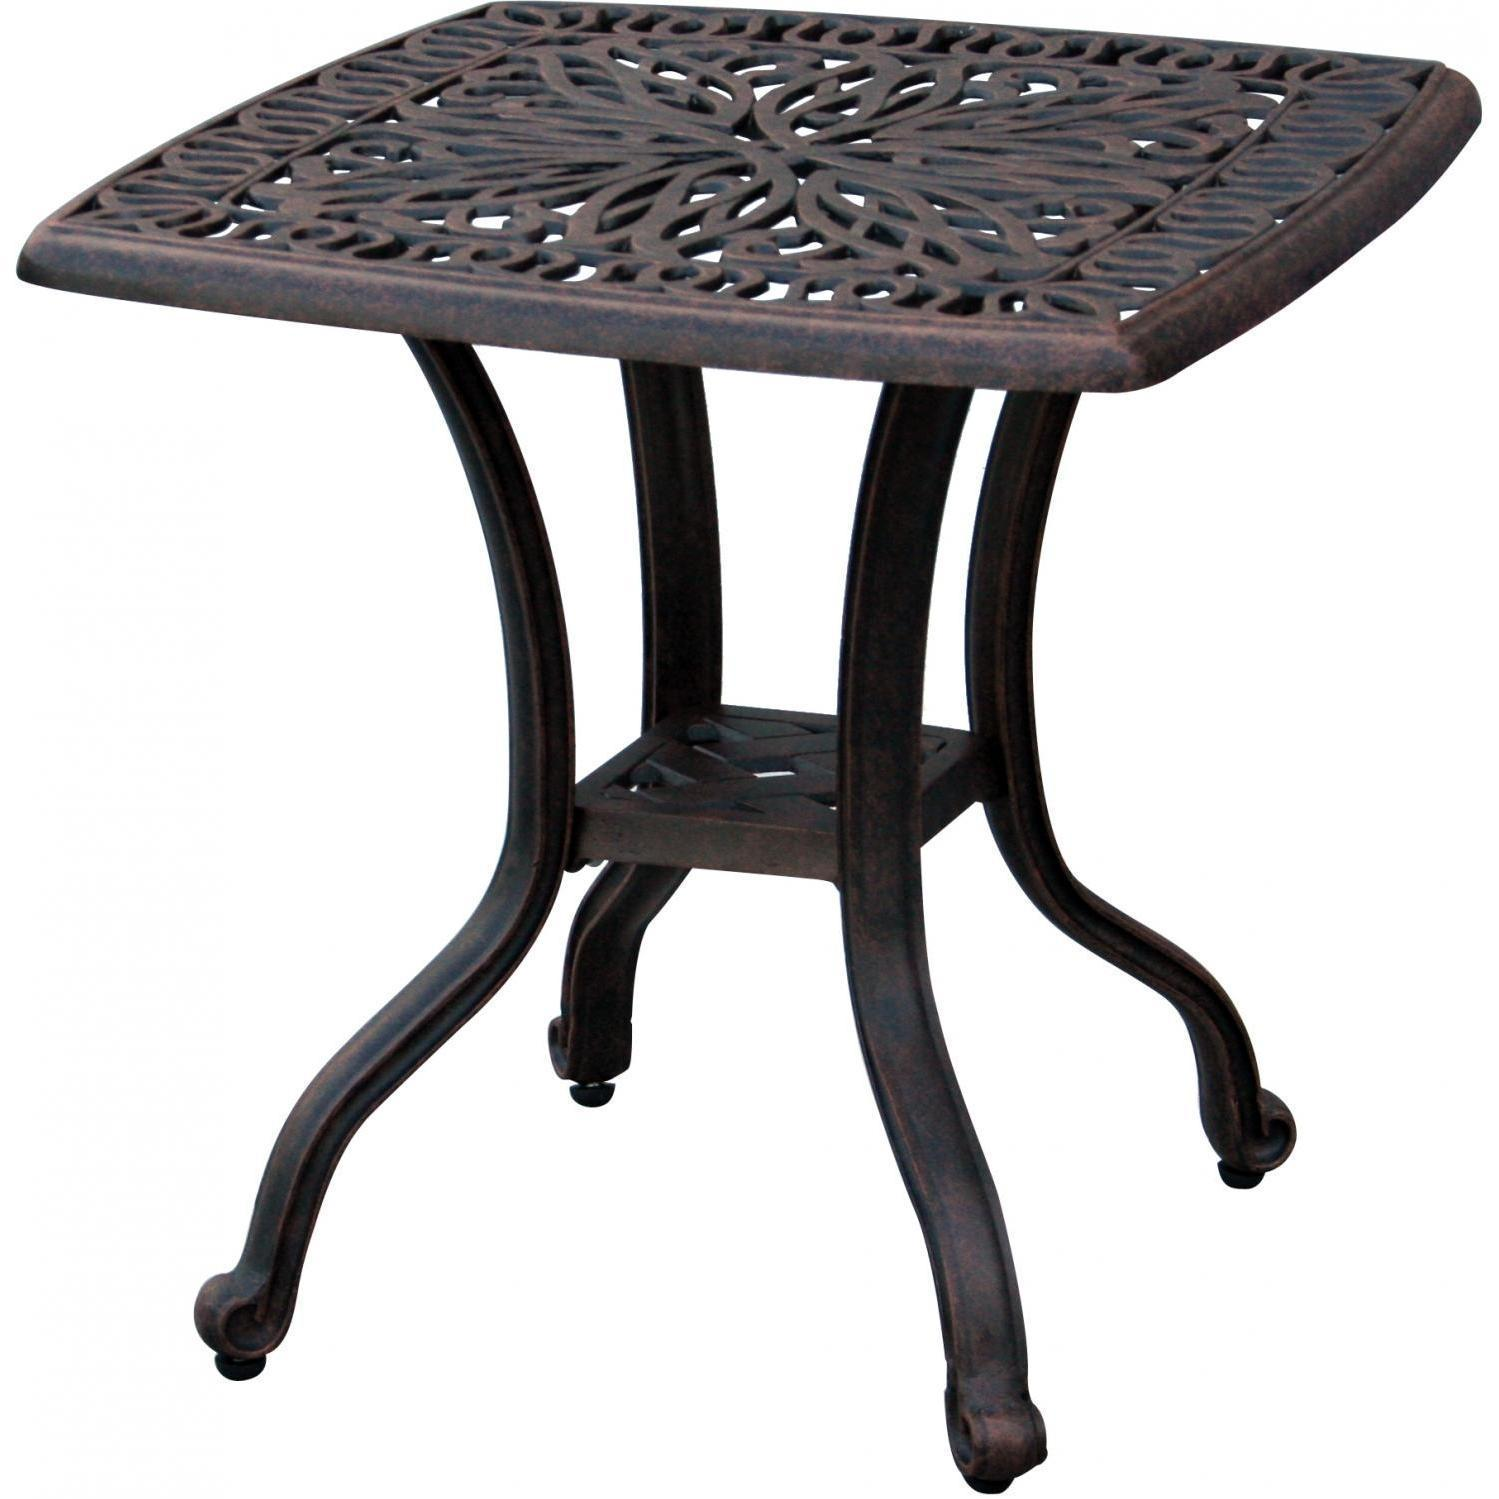 darlee elisabeth piece cast aluminum patio conversation seating outdoor umbrella accent table set end with ice bucket insert bbq guys painted tables cherry wood side curved glass